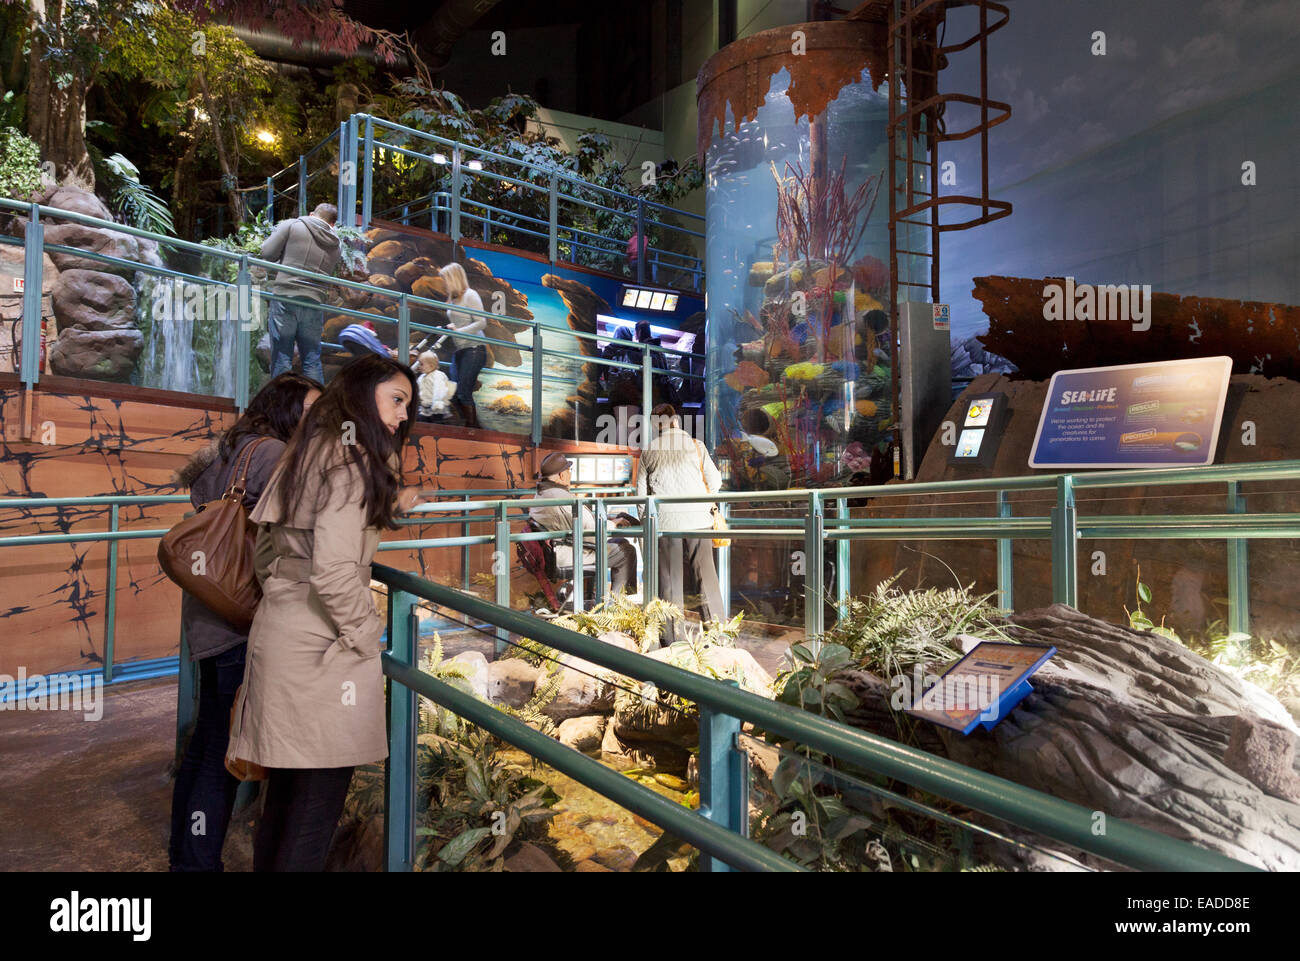 People looking at the exhibits, The National Sealife Centre, Birmingham, UK - Stock Image